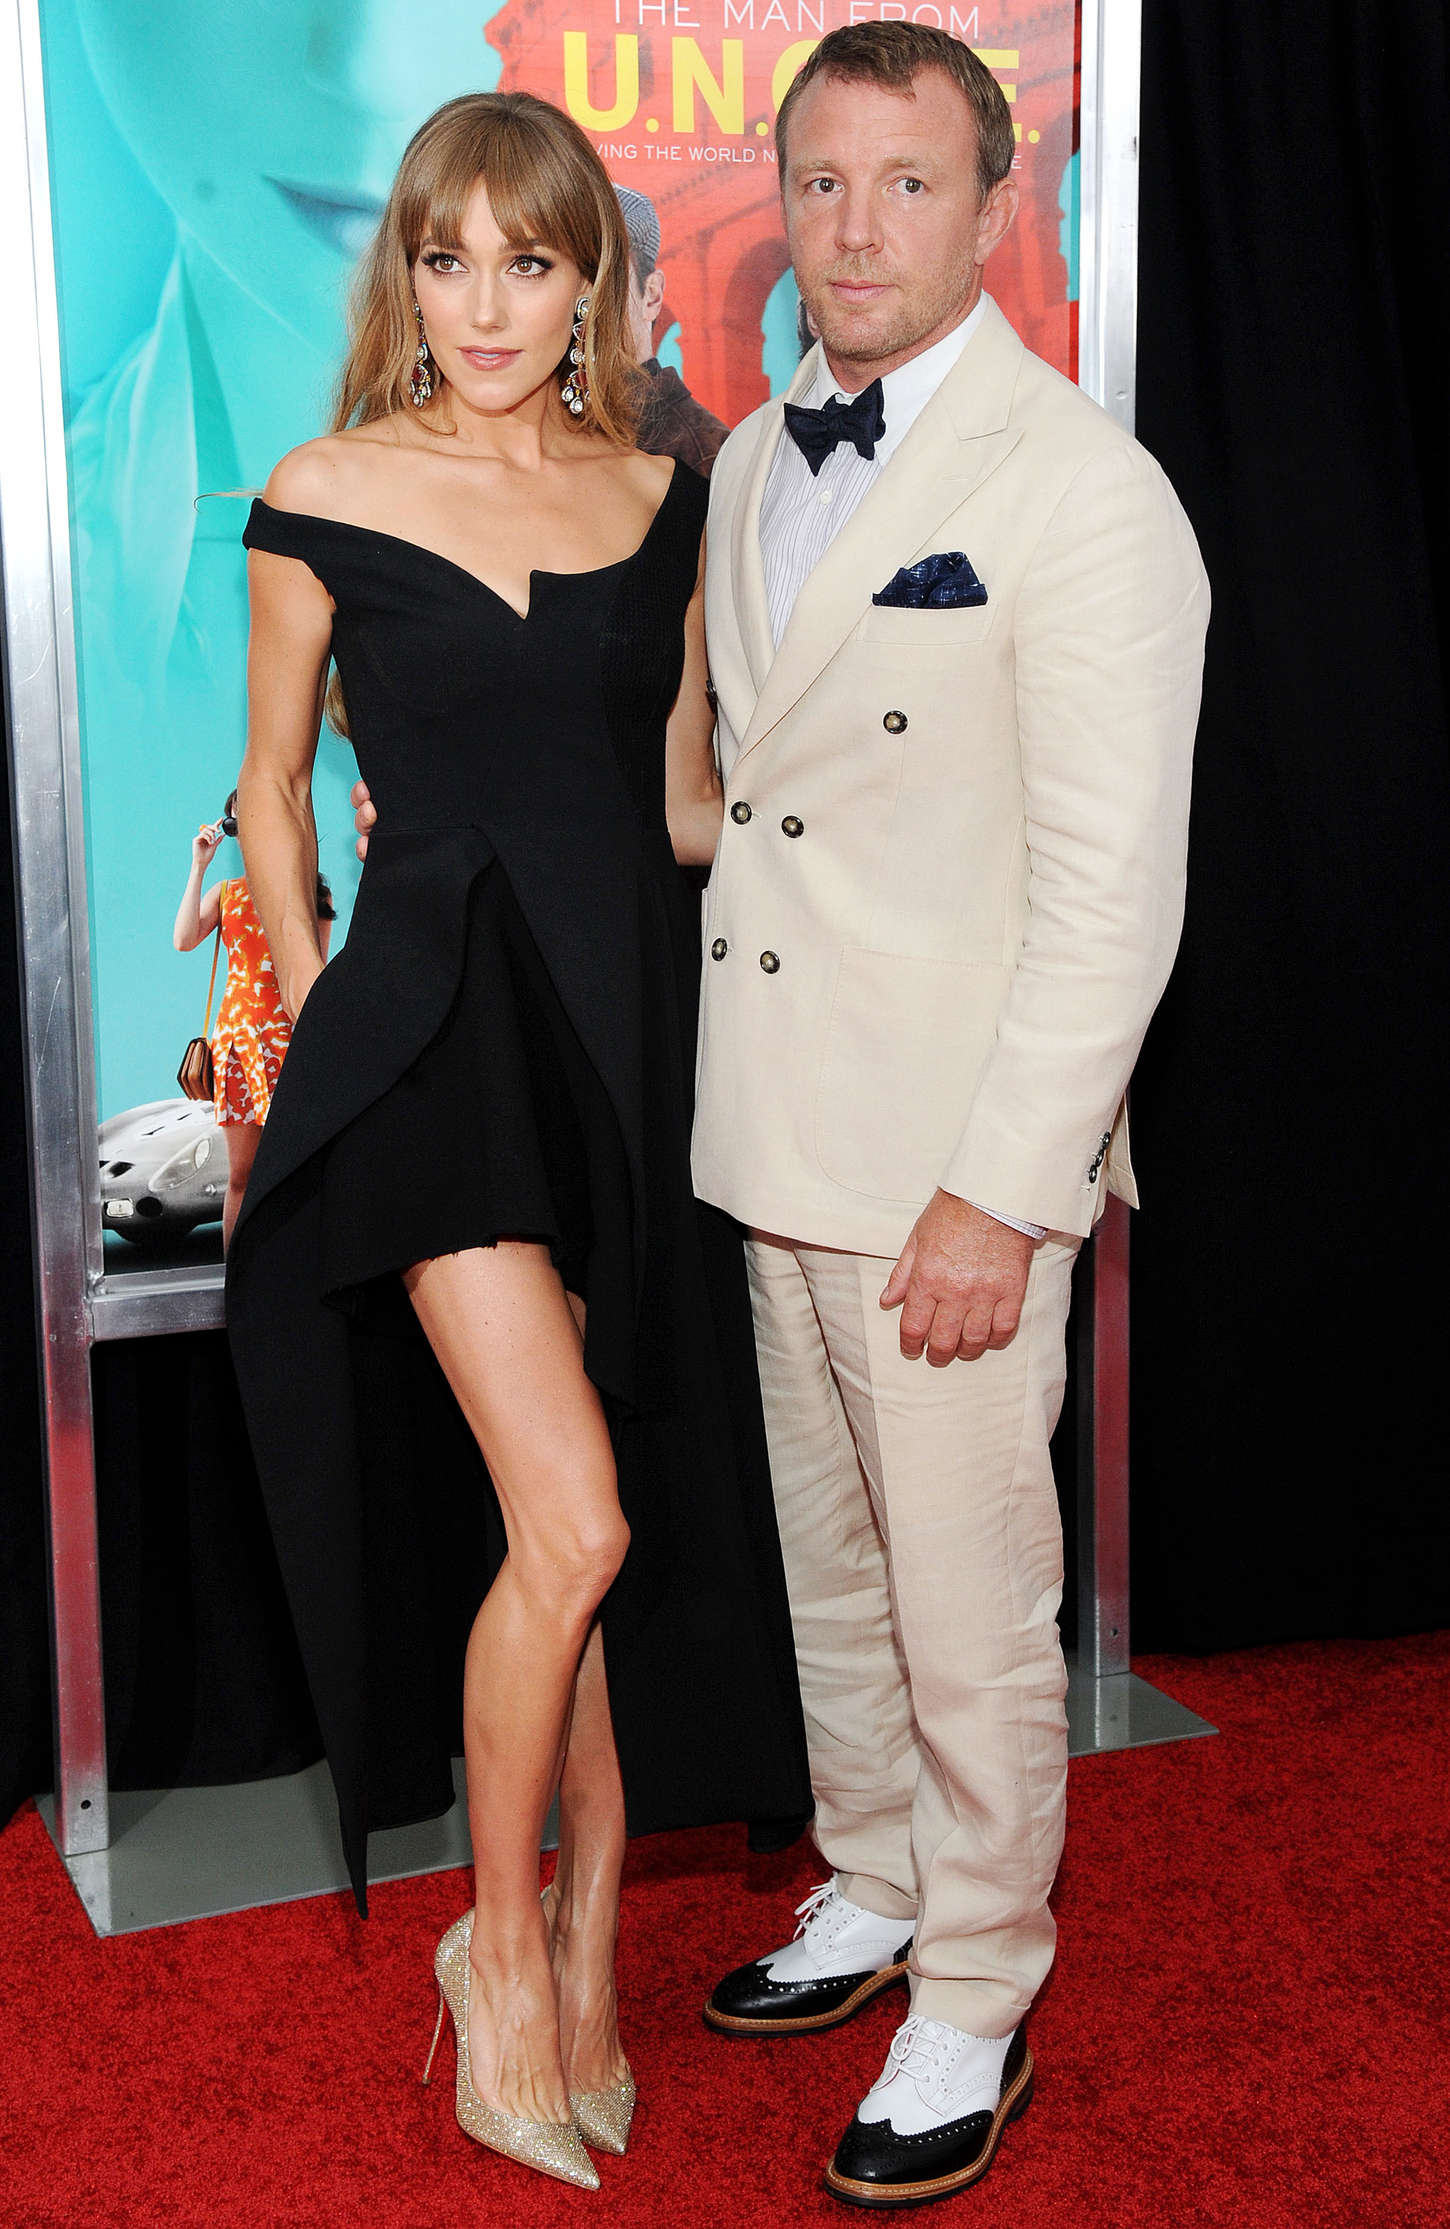 Jacqui Ainsley The Man From U.N.C.L.E. Premiere in New York